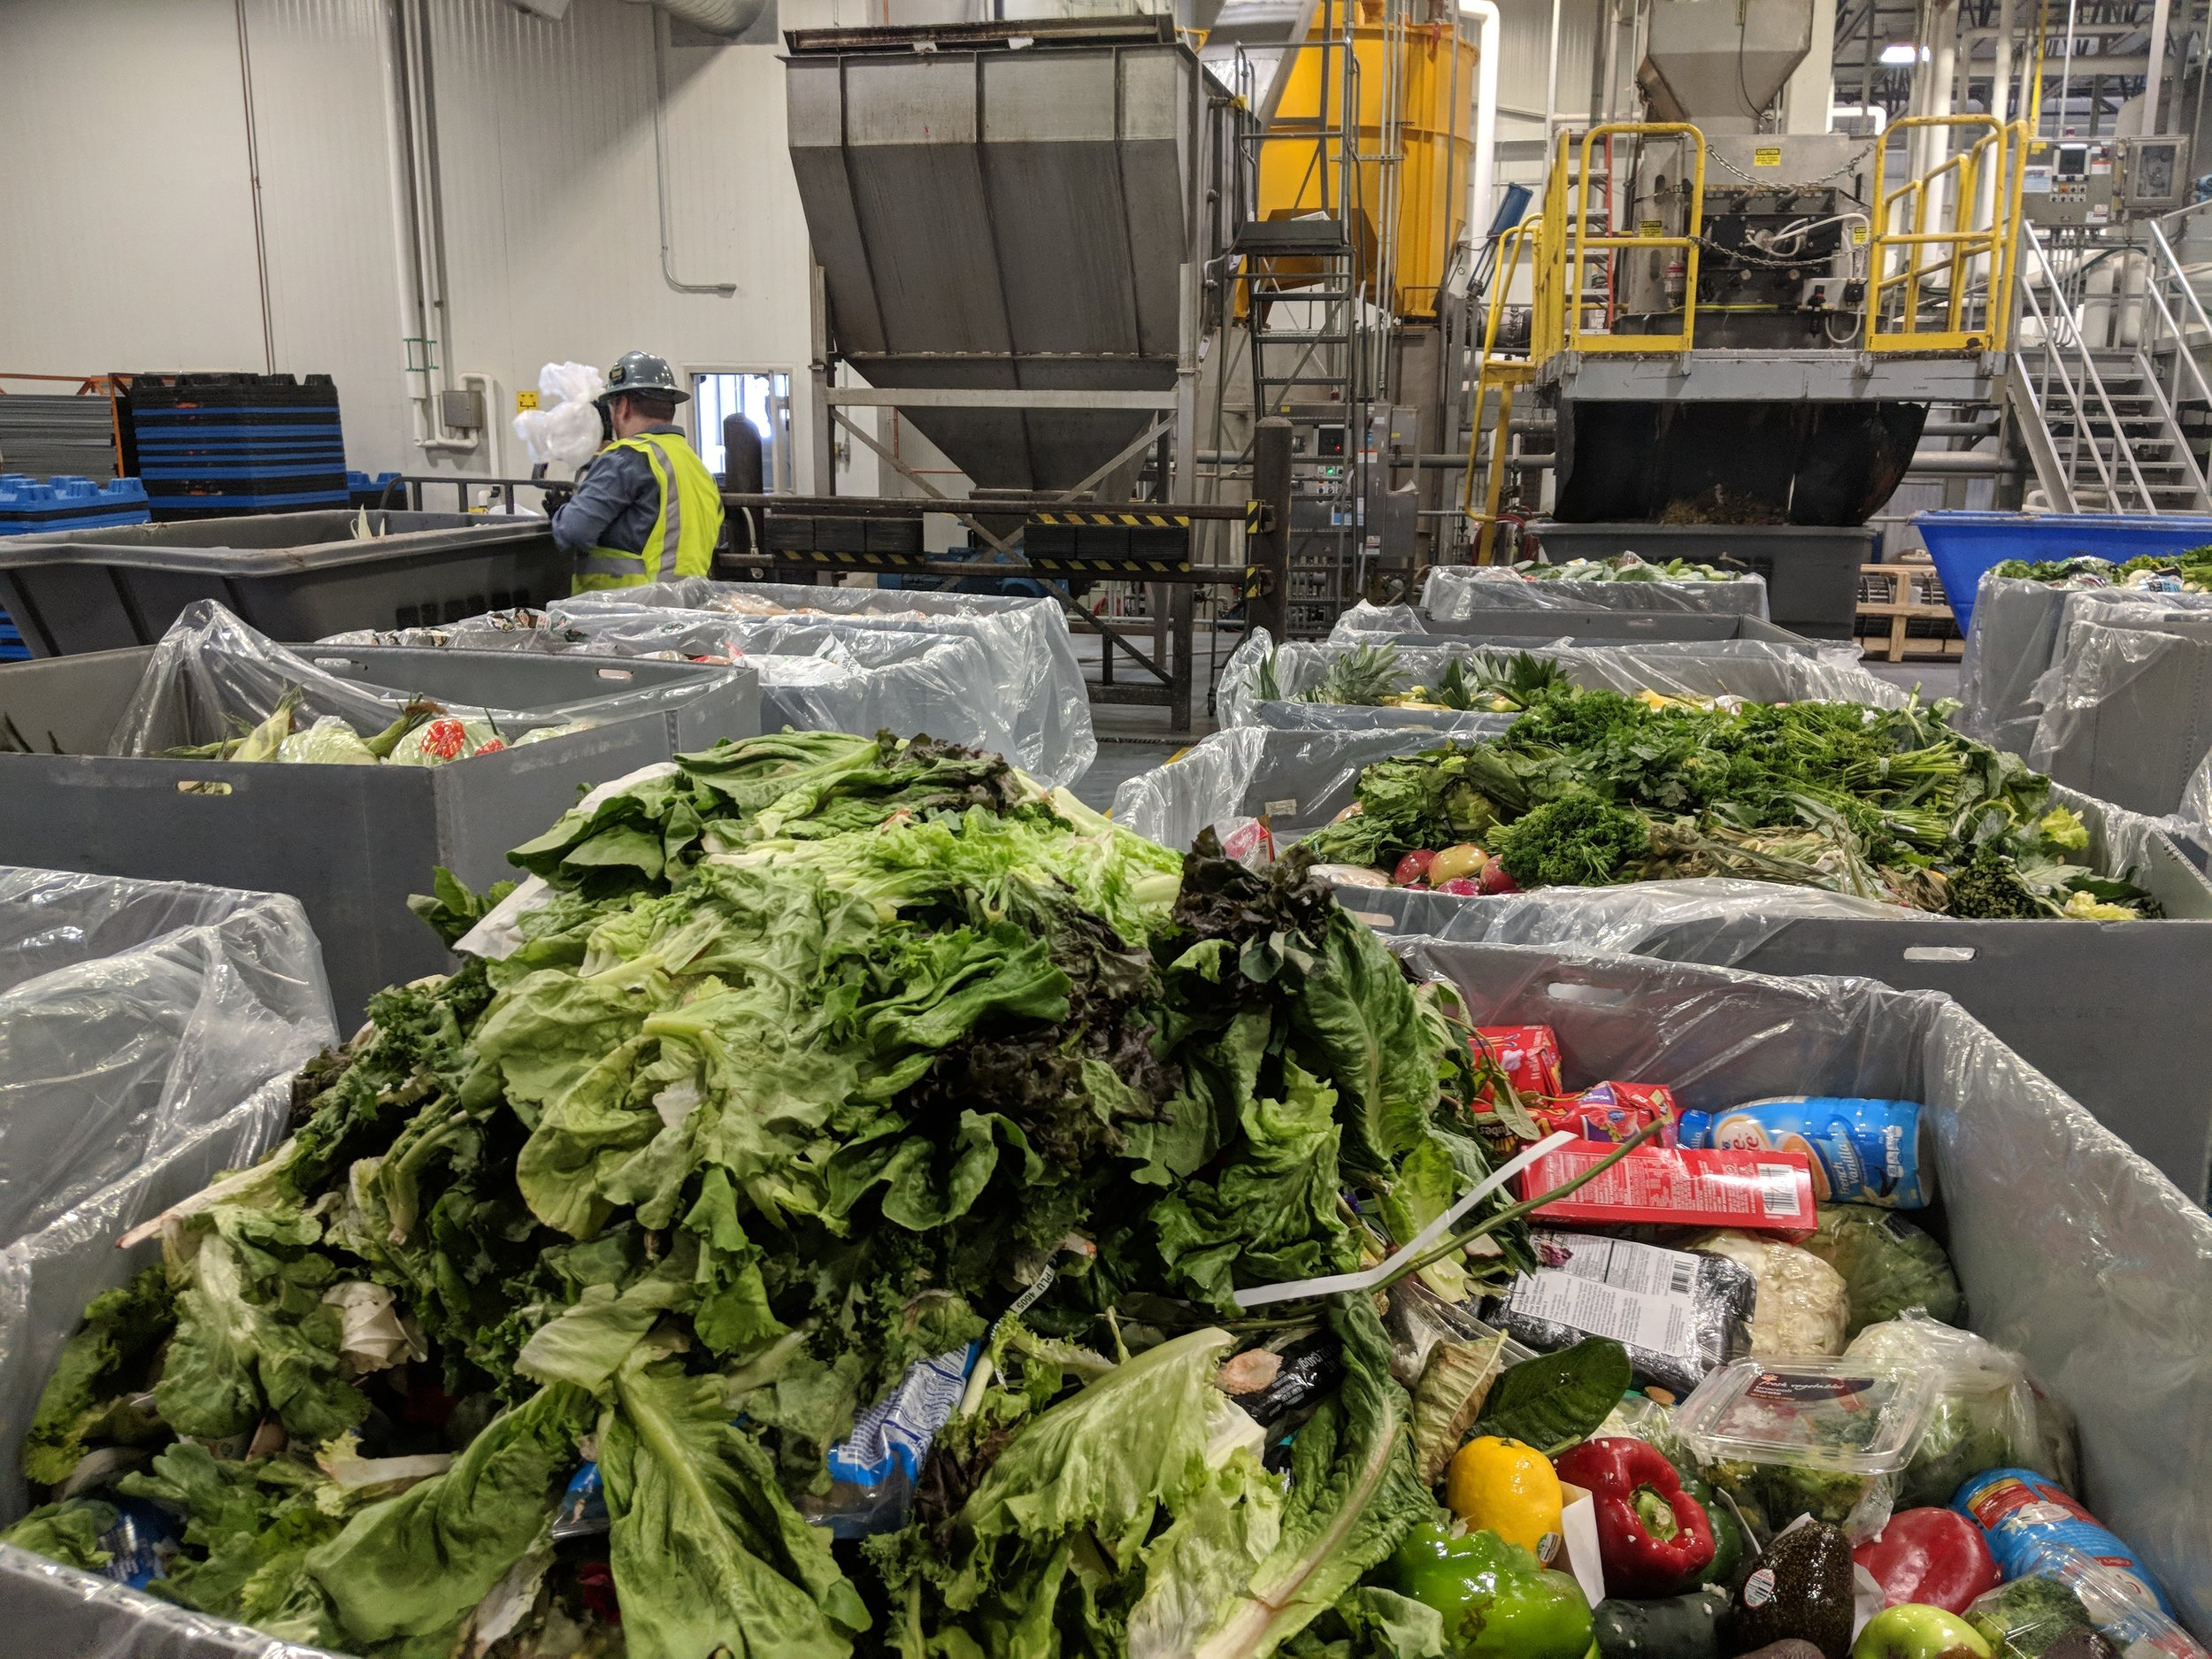 All packaging and inedible food is kept out of the waste stream.